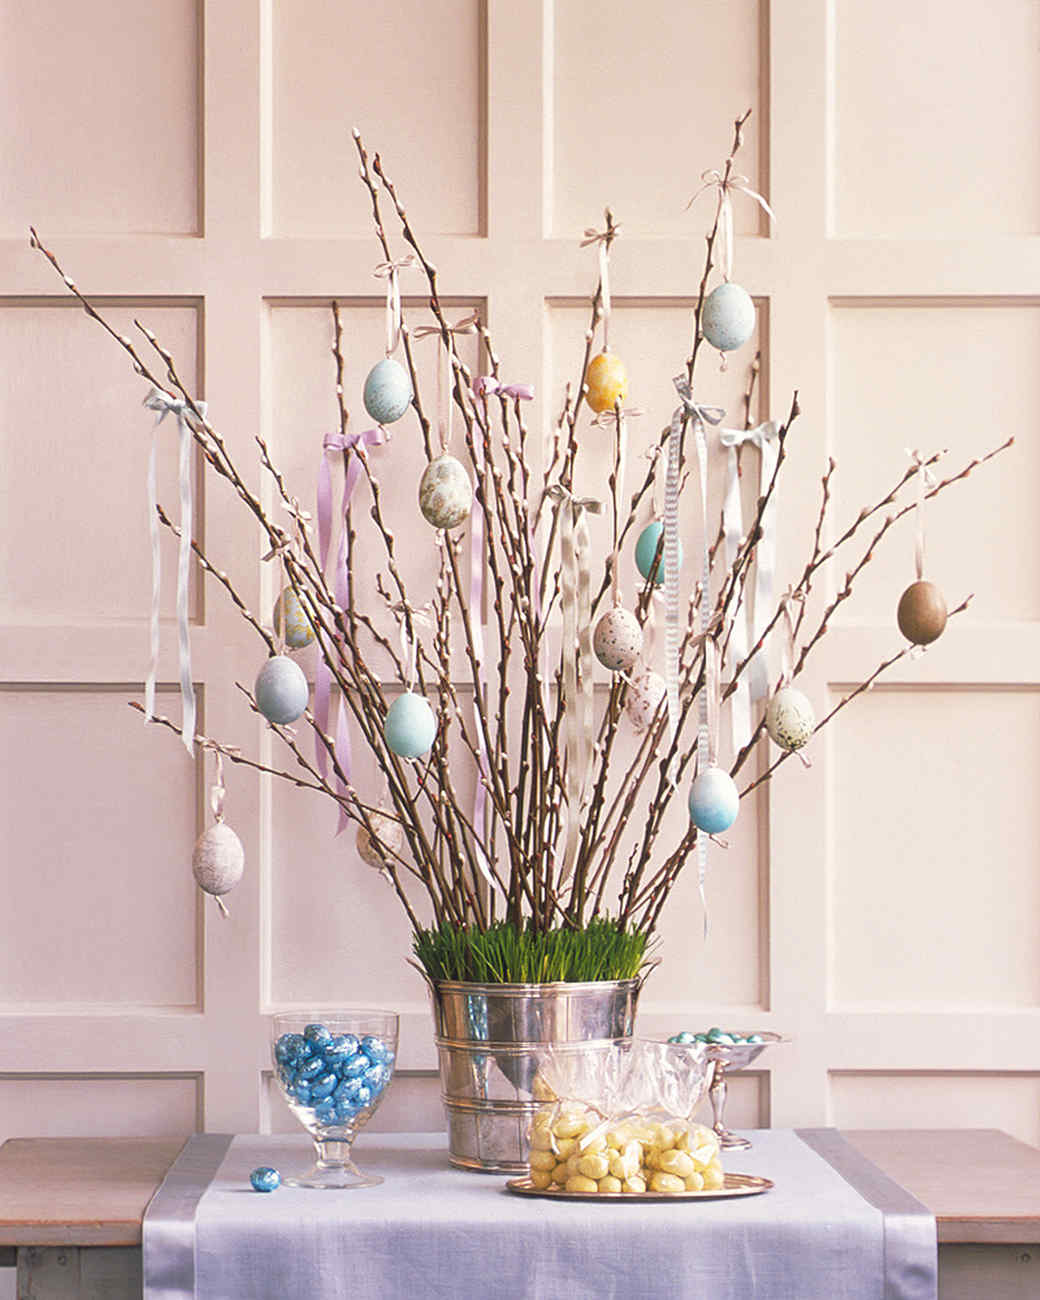 Discussion on this topic: Easy Easter ideas to decorate your home, easy-easter-ideas-to-decorate-your-home/